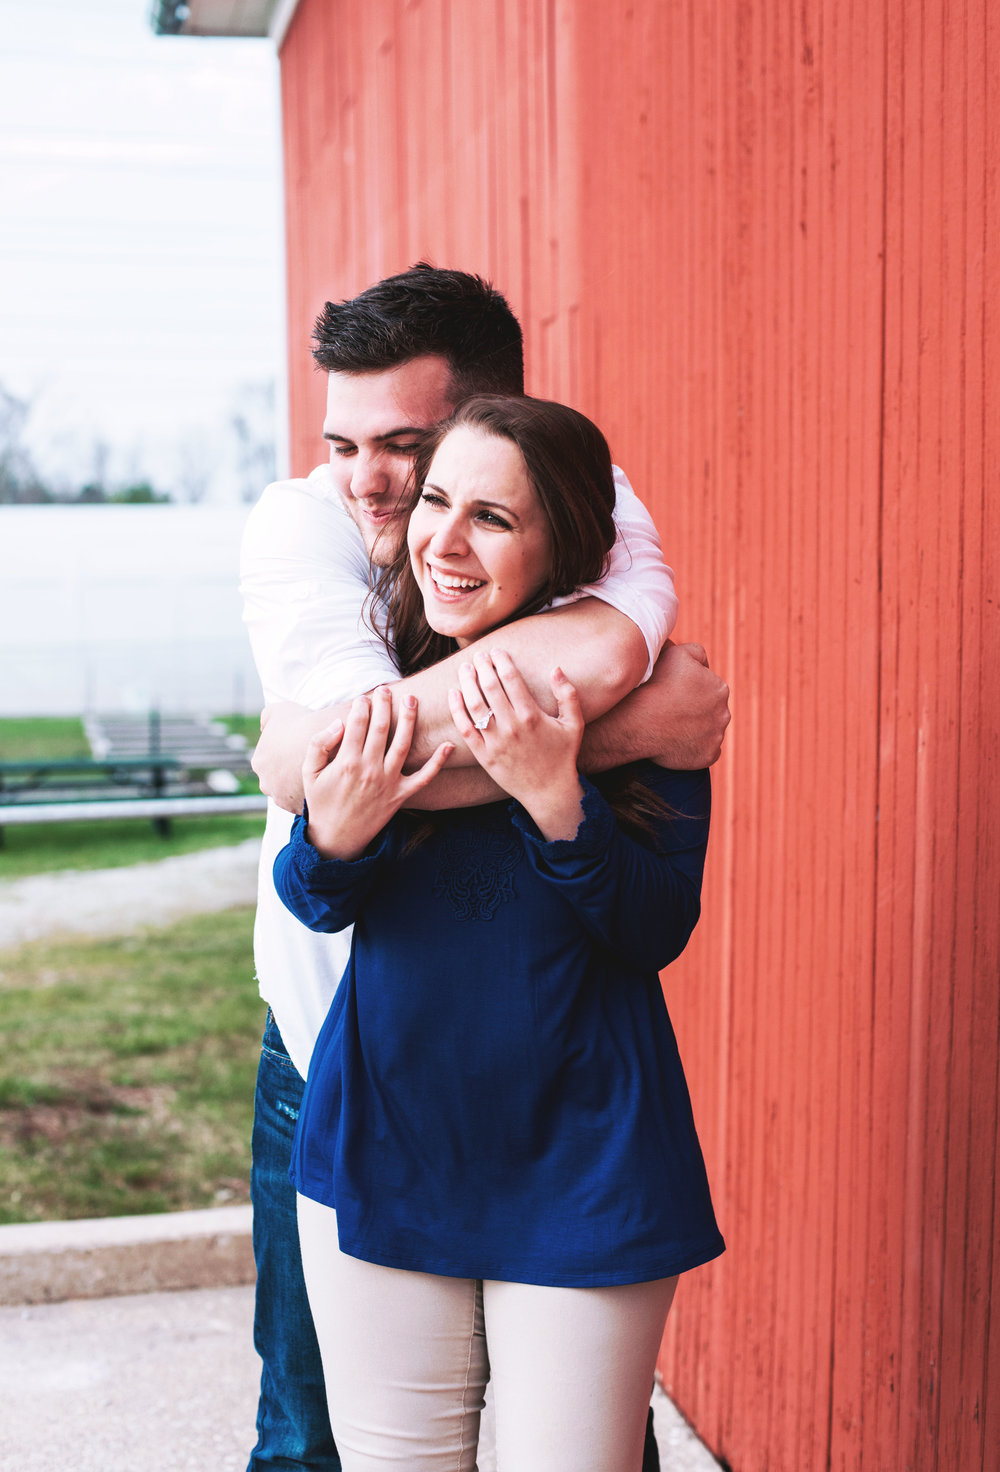 Clayton&Gina_Engagement-5.jpg